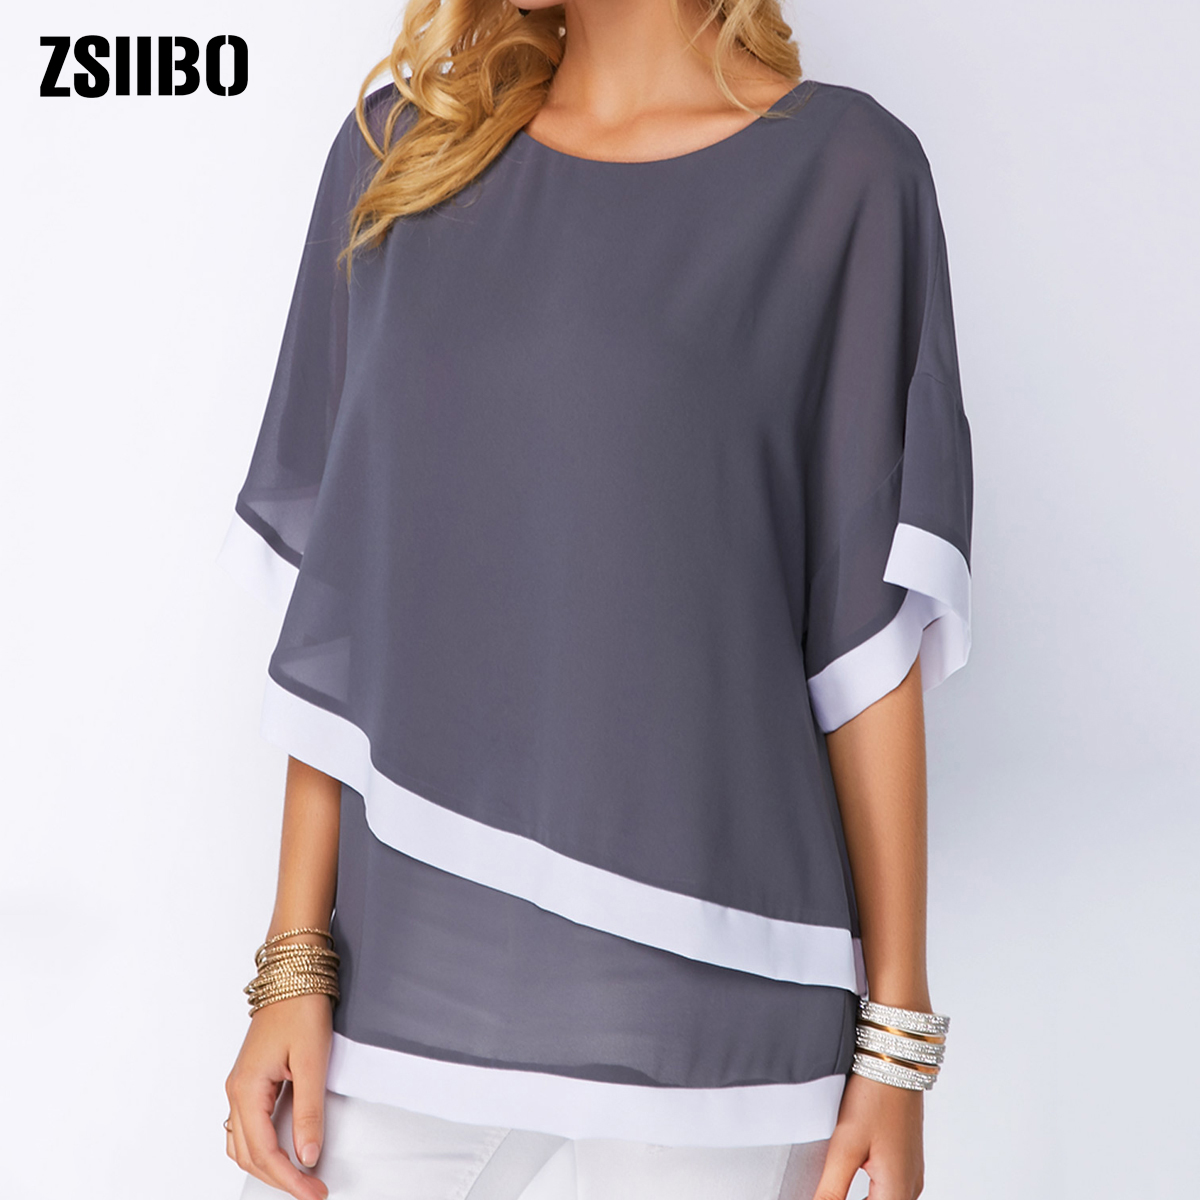 plus size Blouses for women 4xl 5xl Patchwork Double layer Tops Casual Batwing tunic 2019 Autumn Large size Chiffon Shirts(China)